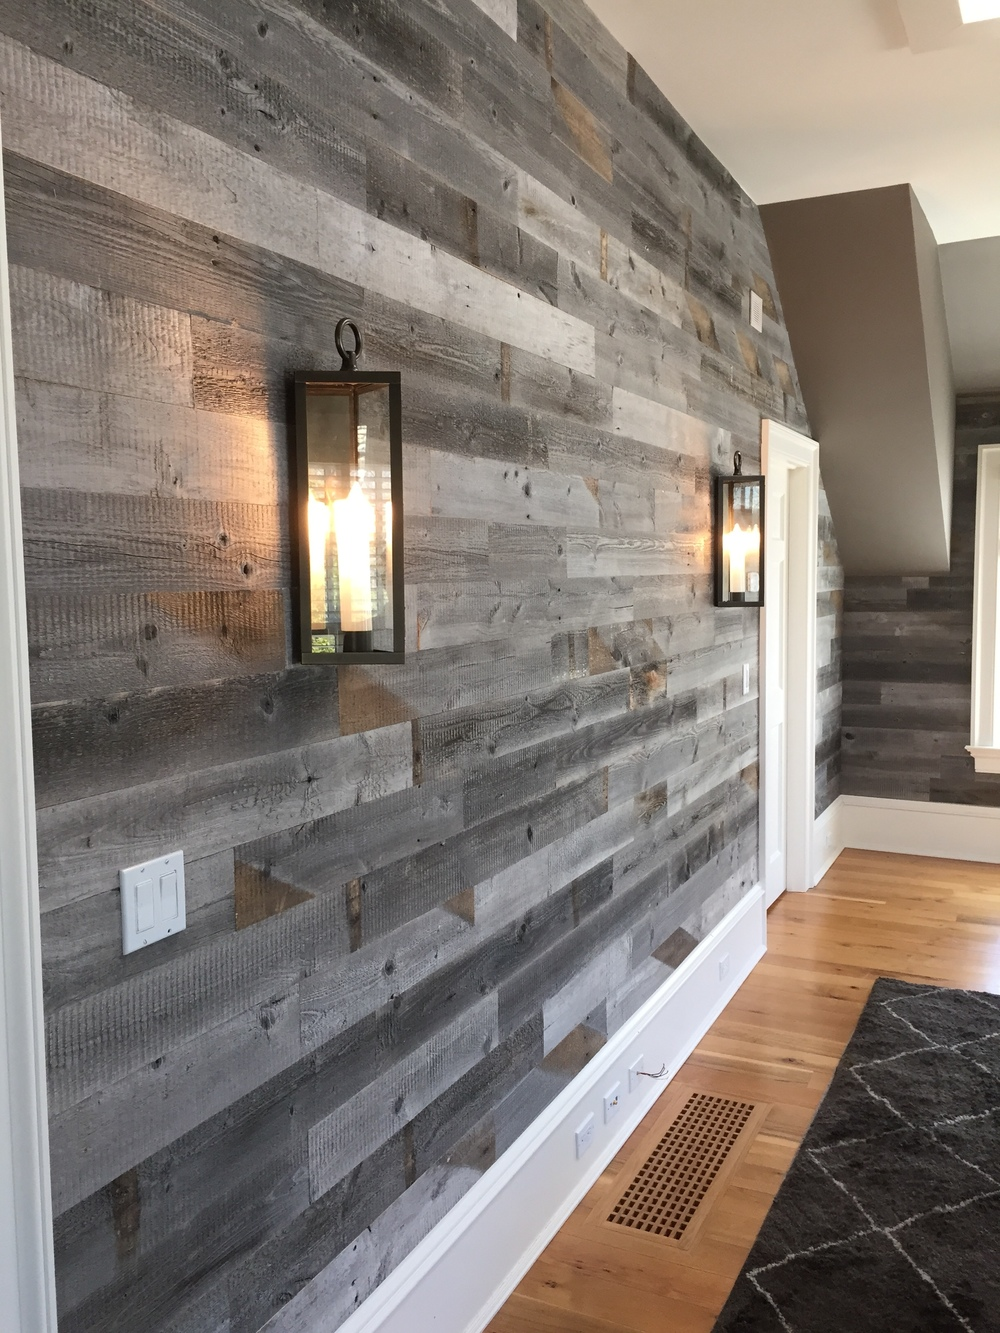 Image of: Instantly Stikwood Adhesive Wood Paneling